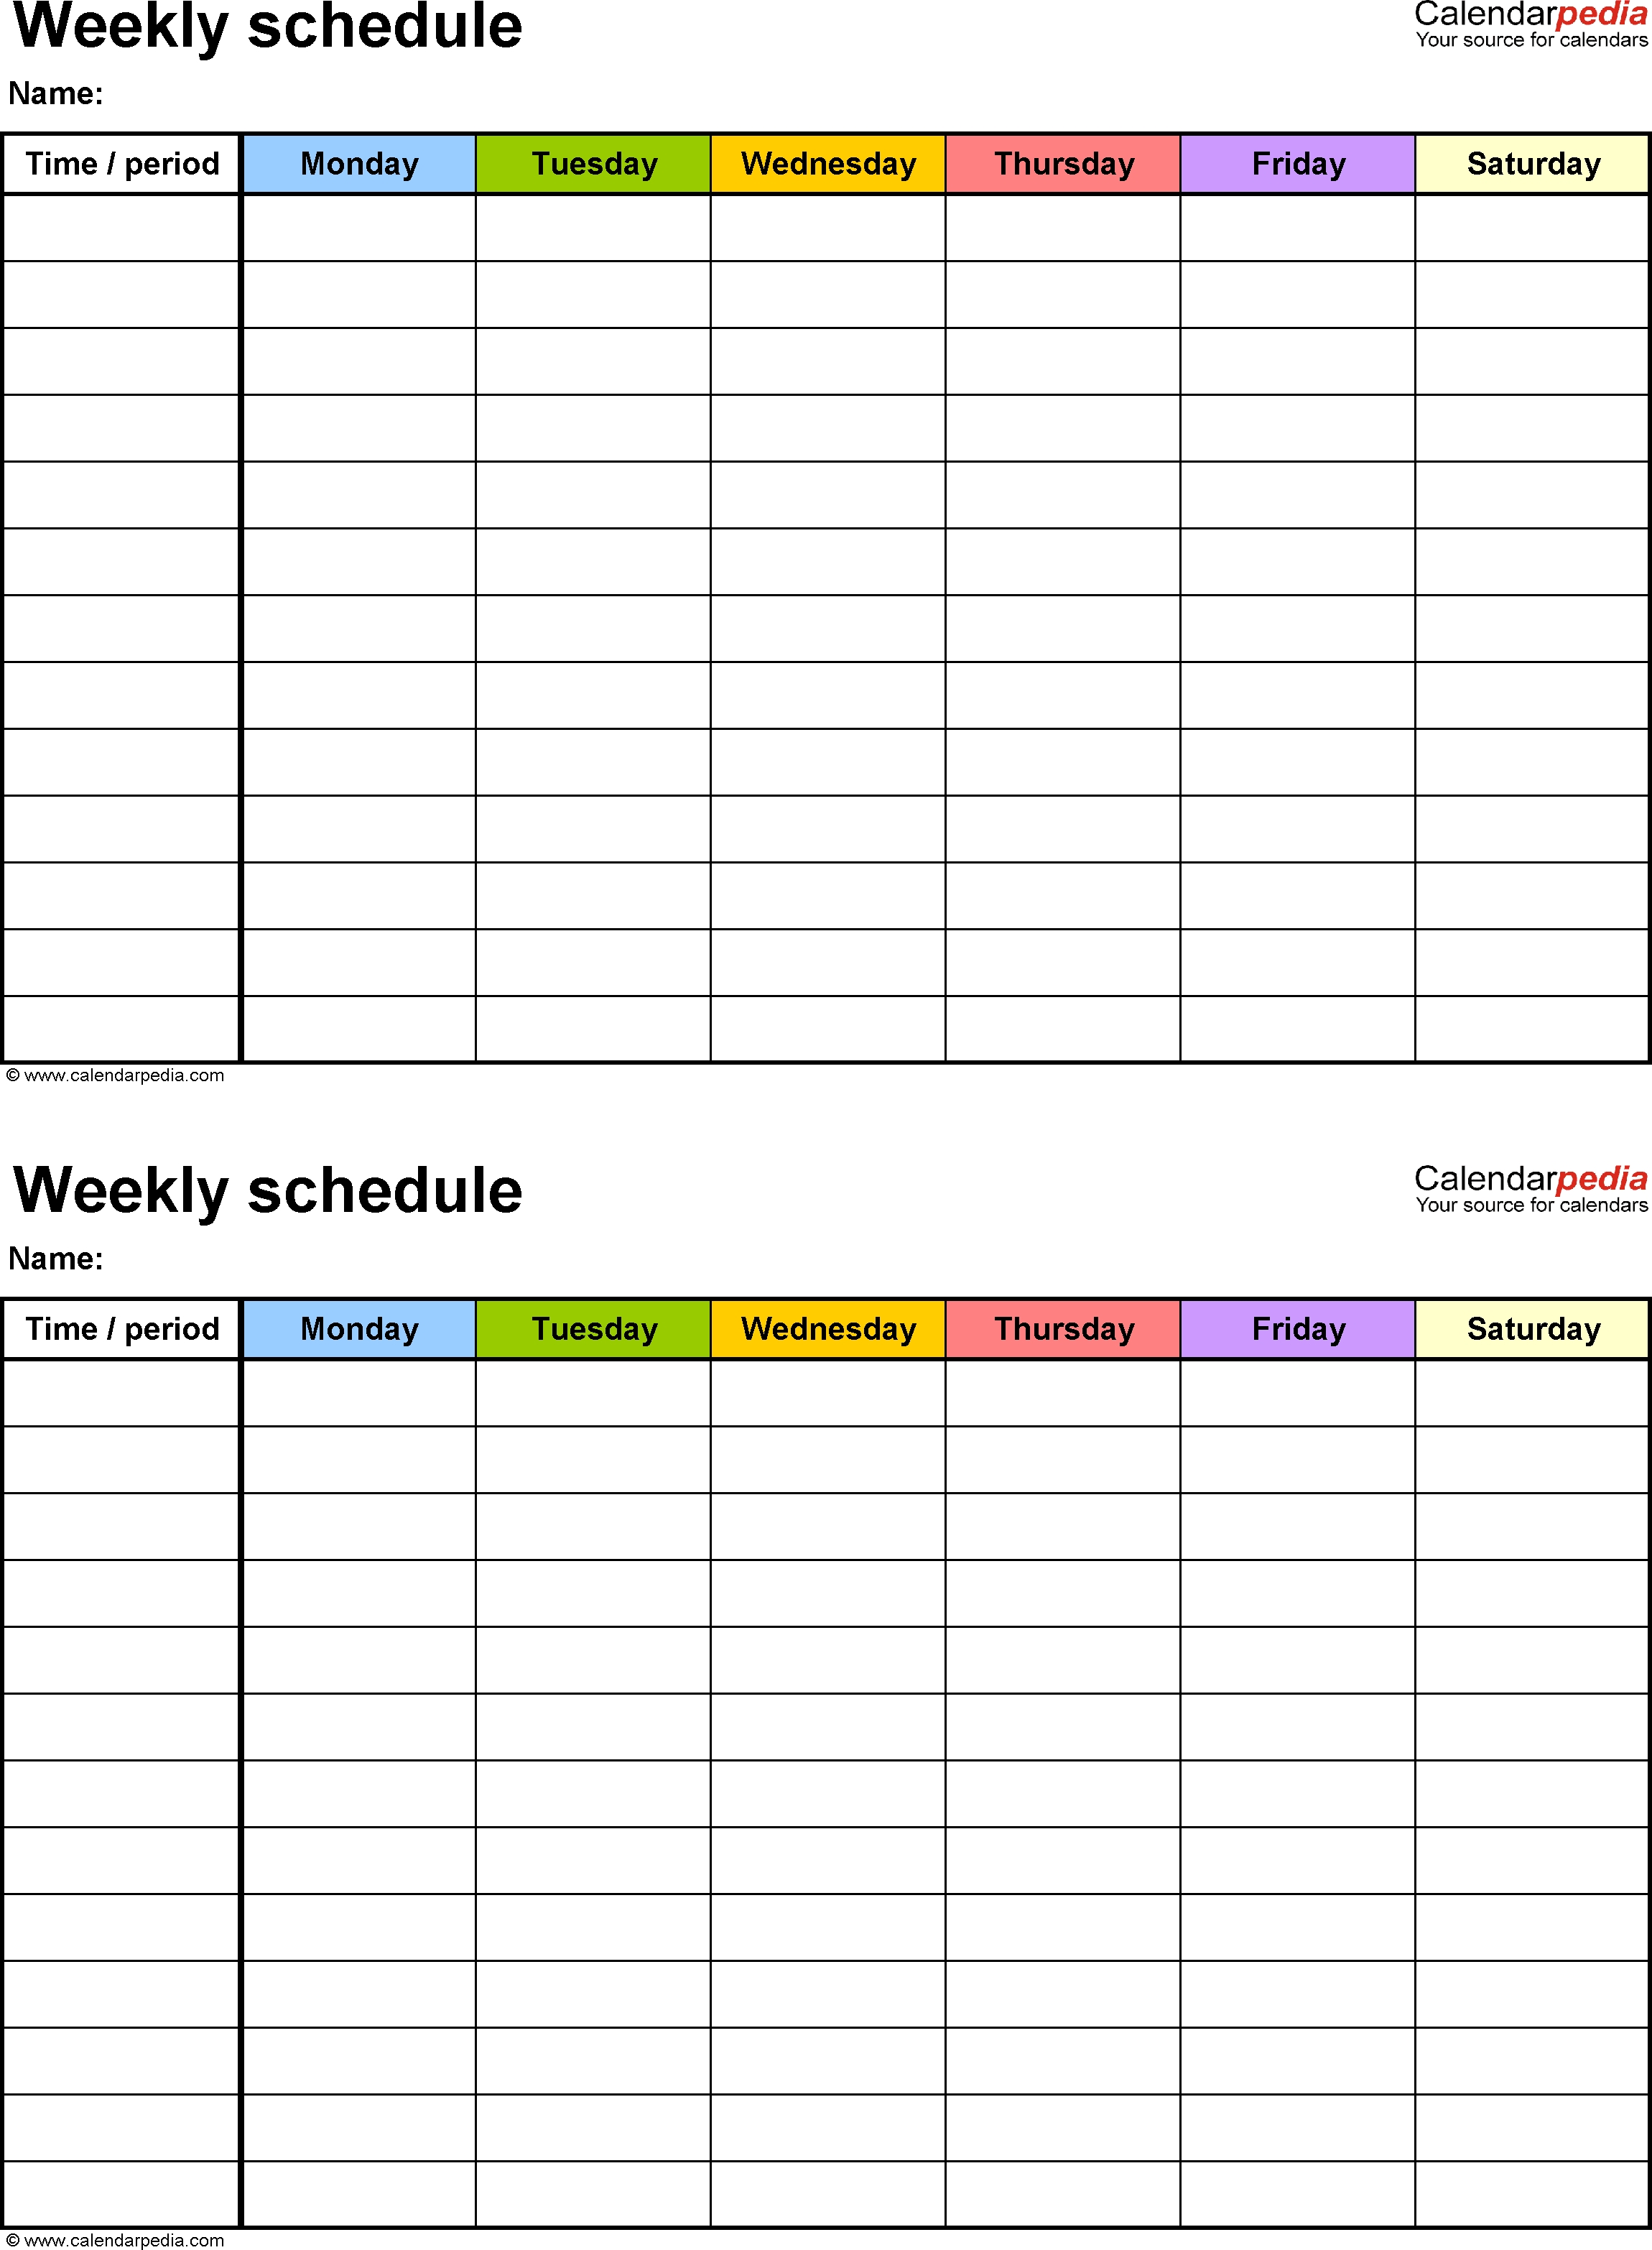 Free Weekly Schedule Templates For Word - 18 Templates-Two Week Schedule Template